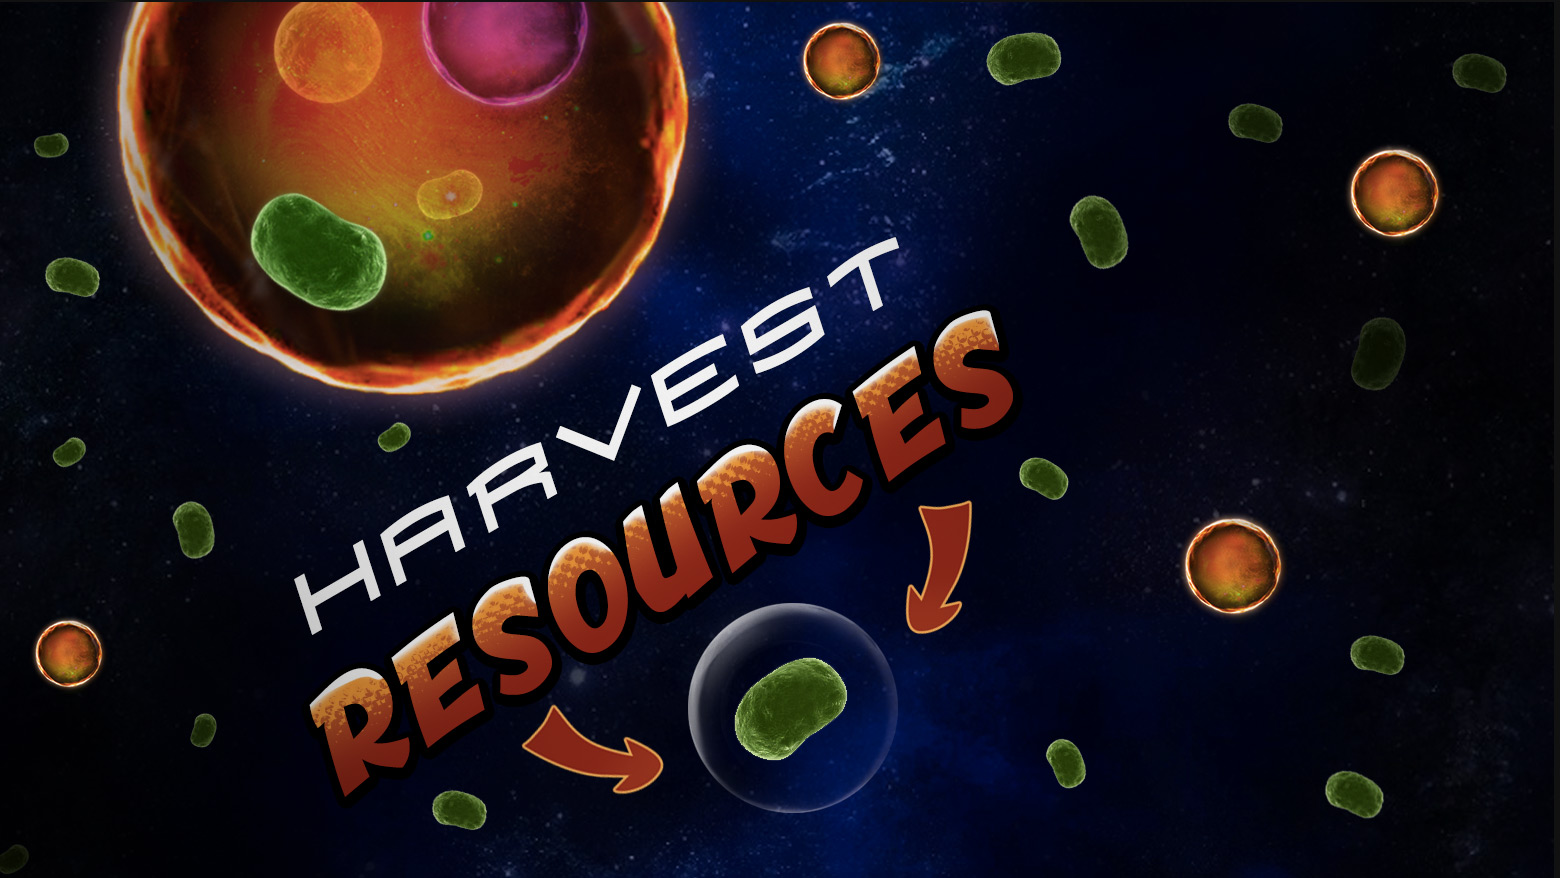 Harvest resources